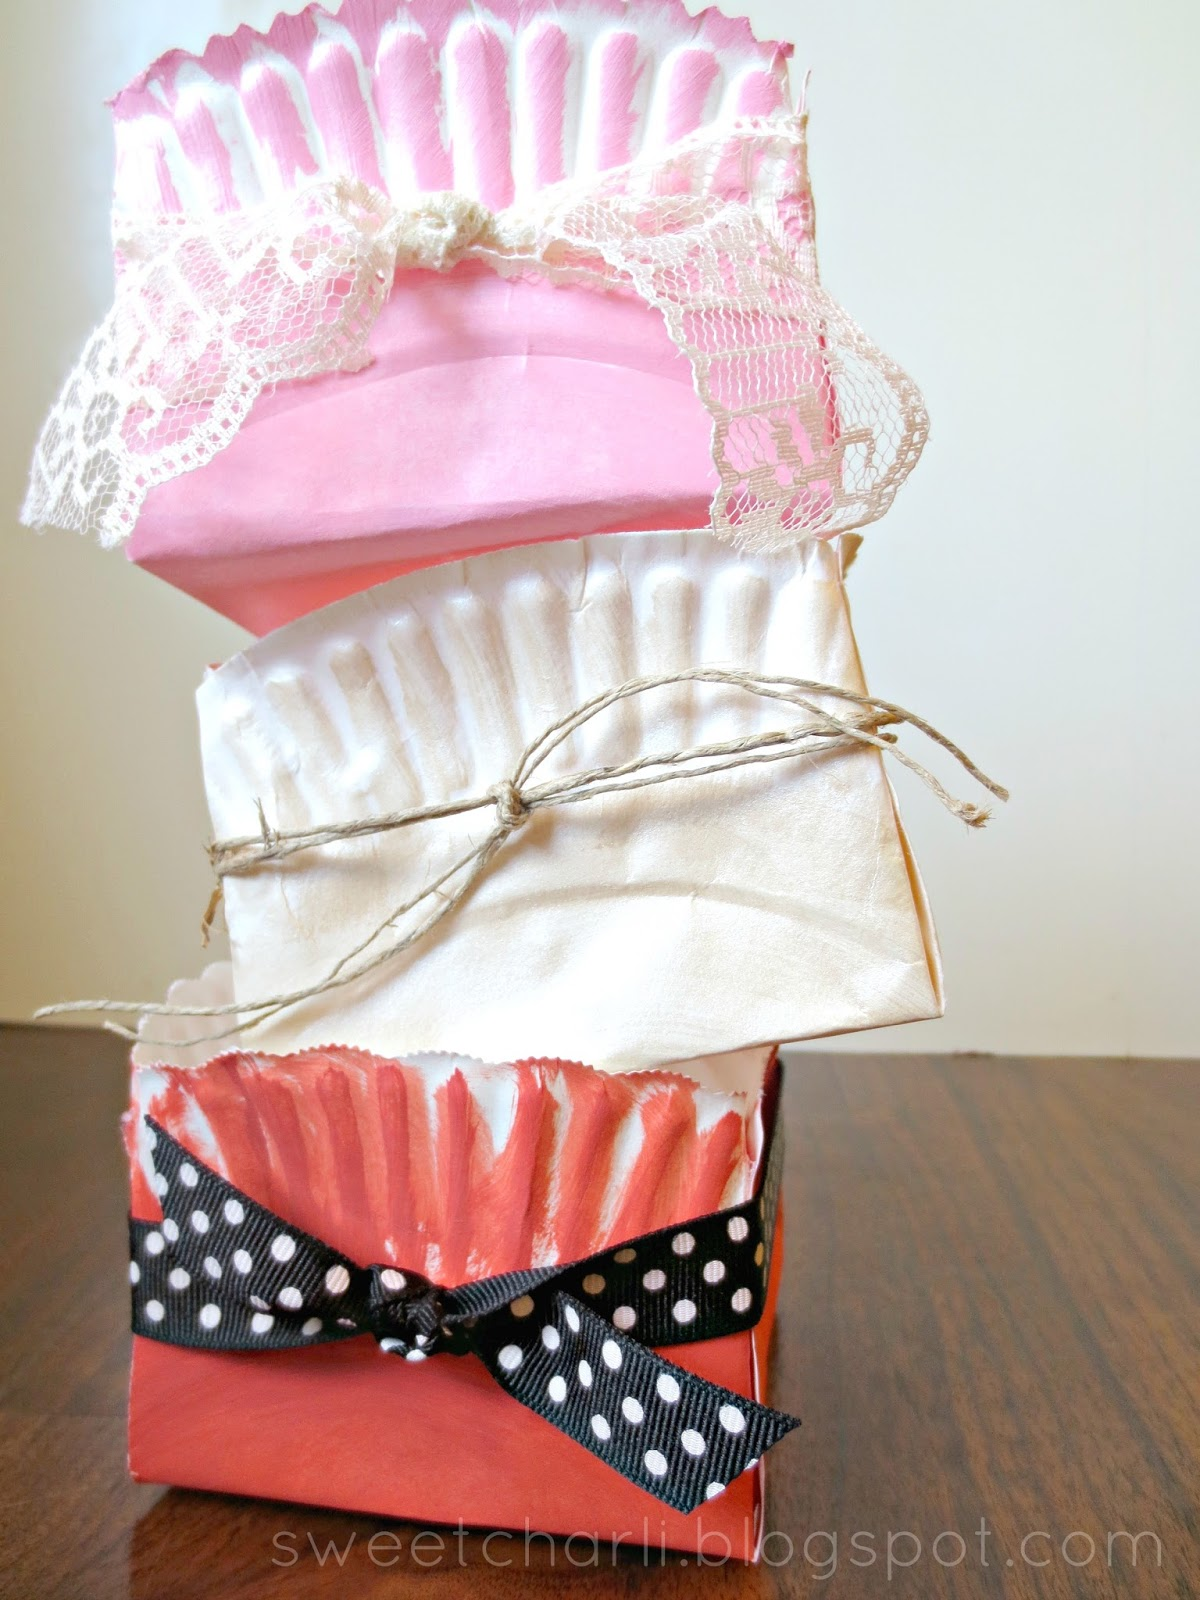 diy gift box using a paper plate